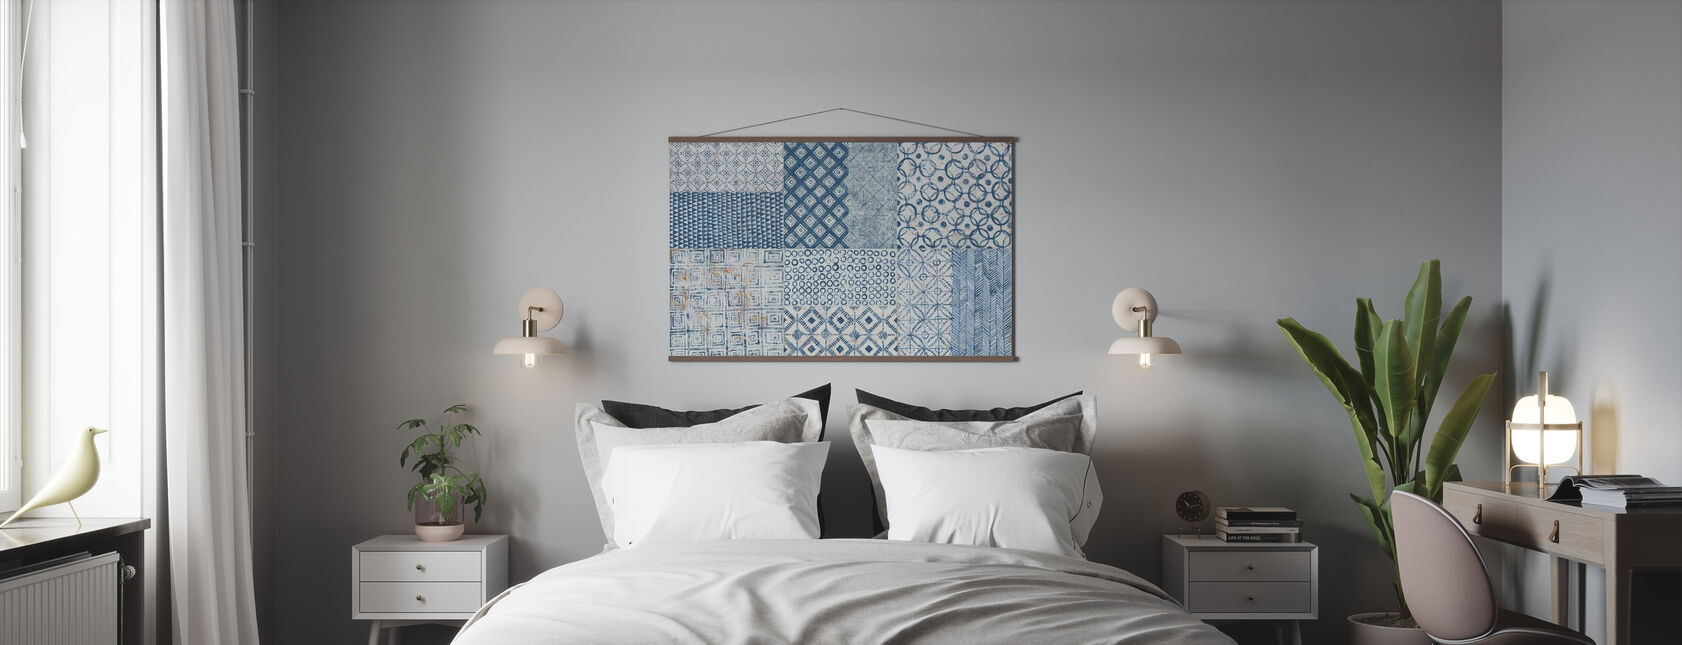 Maki Tile XVII - Poster - Bedroom